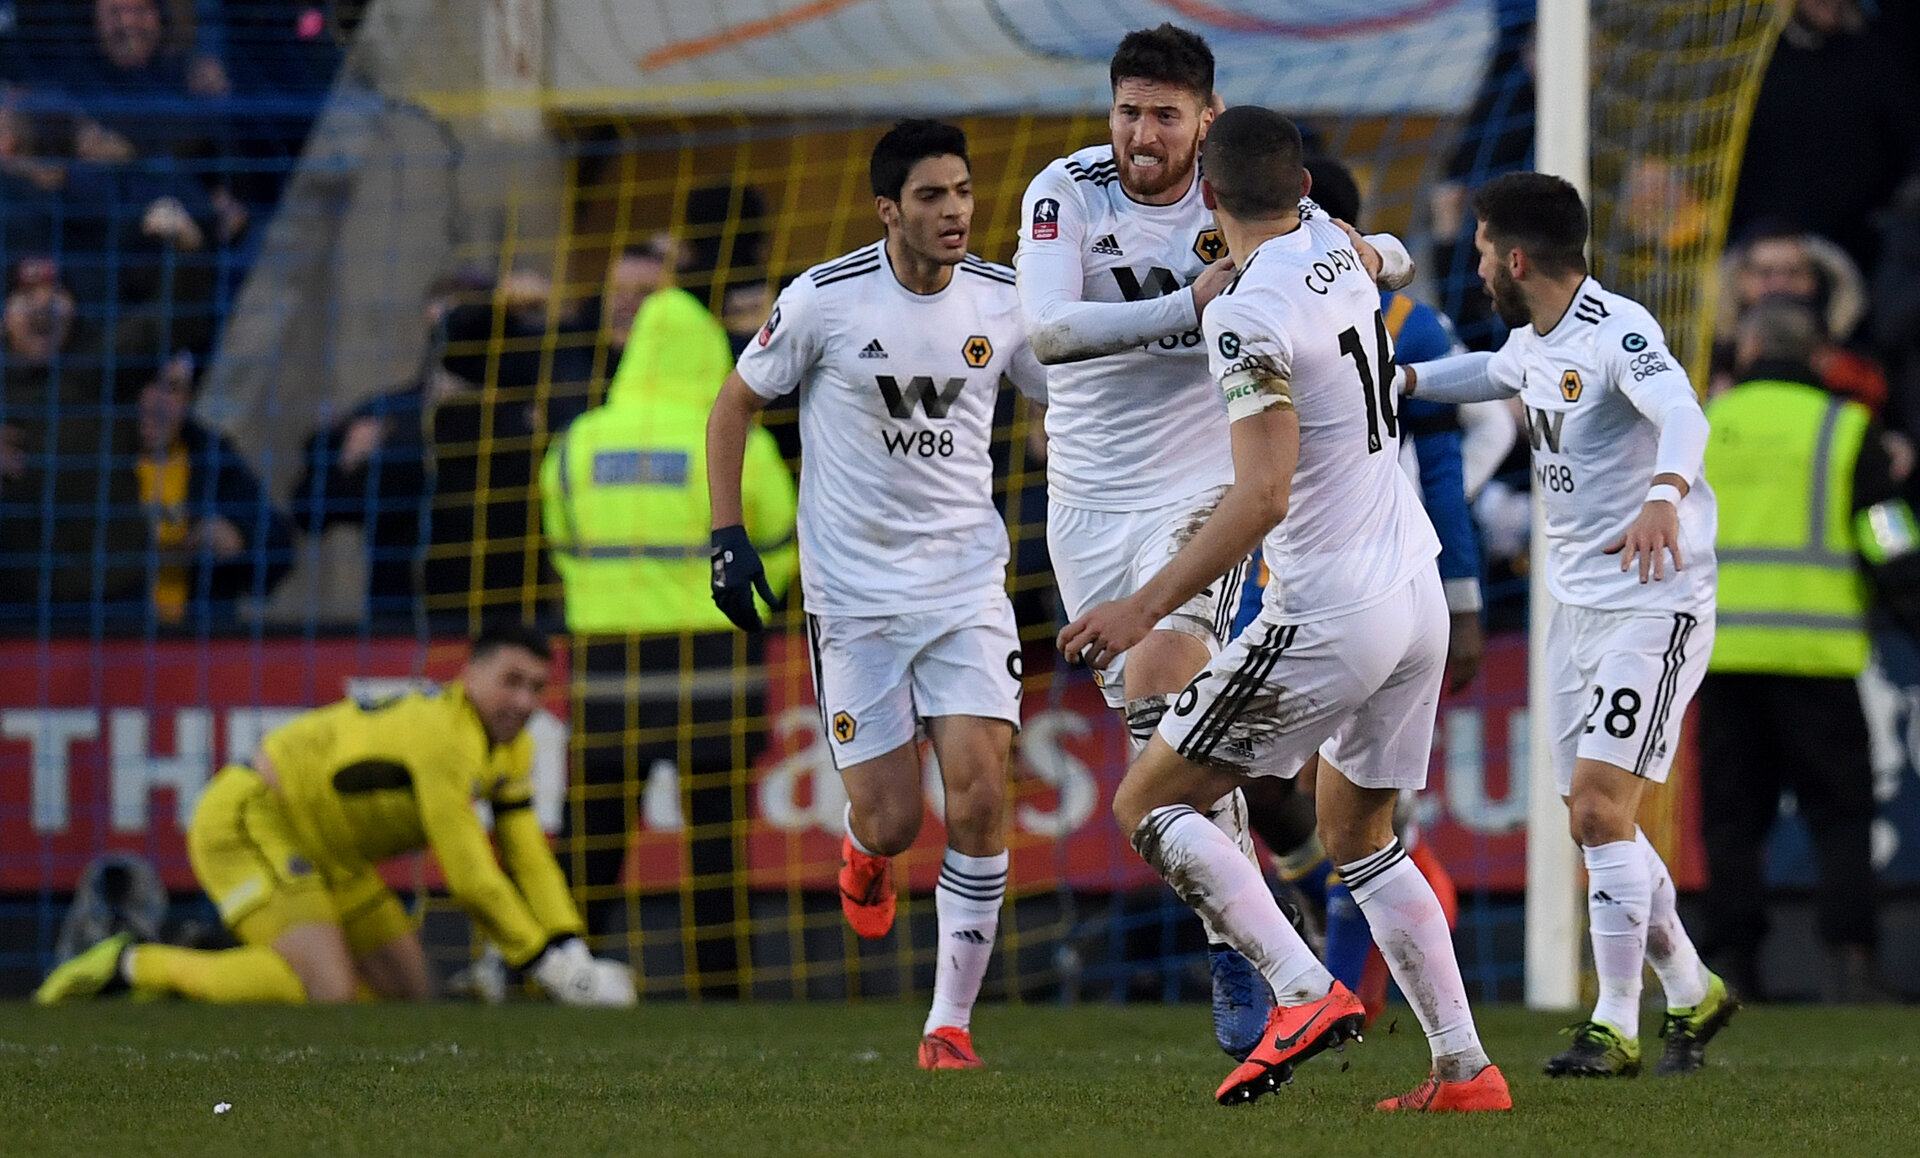 Wolverhampton Wanderers' Irish defender Matt Doherty (3R) celebrates scoring his team's second goal during the English FA Cup fourth round football match between Shrewsbury Town and Wolverhampton Wanderers at Montgomery Waters Meadow stadium in Shrewsbury, central England, on January 26, 2019. - The match ended 2-2. (Photo by Paul ELLIS / AFP) / RESTRICTED TO EDITORIAL USE. No use with unauthorized audio, video, data, fixture lists, club/league logos or 'live' services. Online in-match use limited to 120 images. An additional 40 images may be used in extra time. No video emulation. Social media in-match use limited to 120 images. An additional 40 images may be used in extra time. No use in betting publications, games or single club/league/player publications. /         (Photo credit should read PAUL ELLIS/AFP/Getty Images)